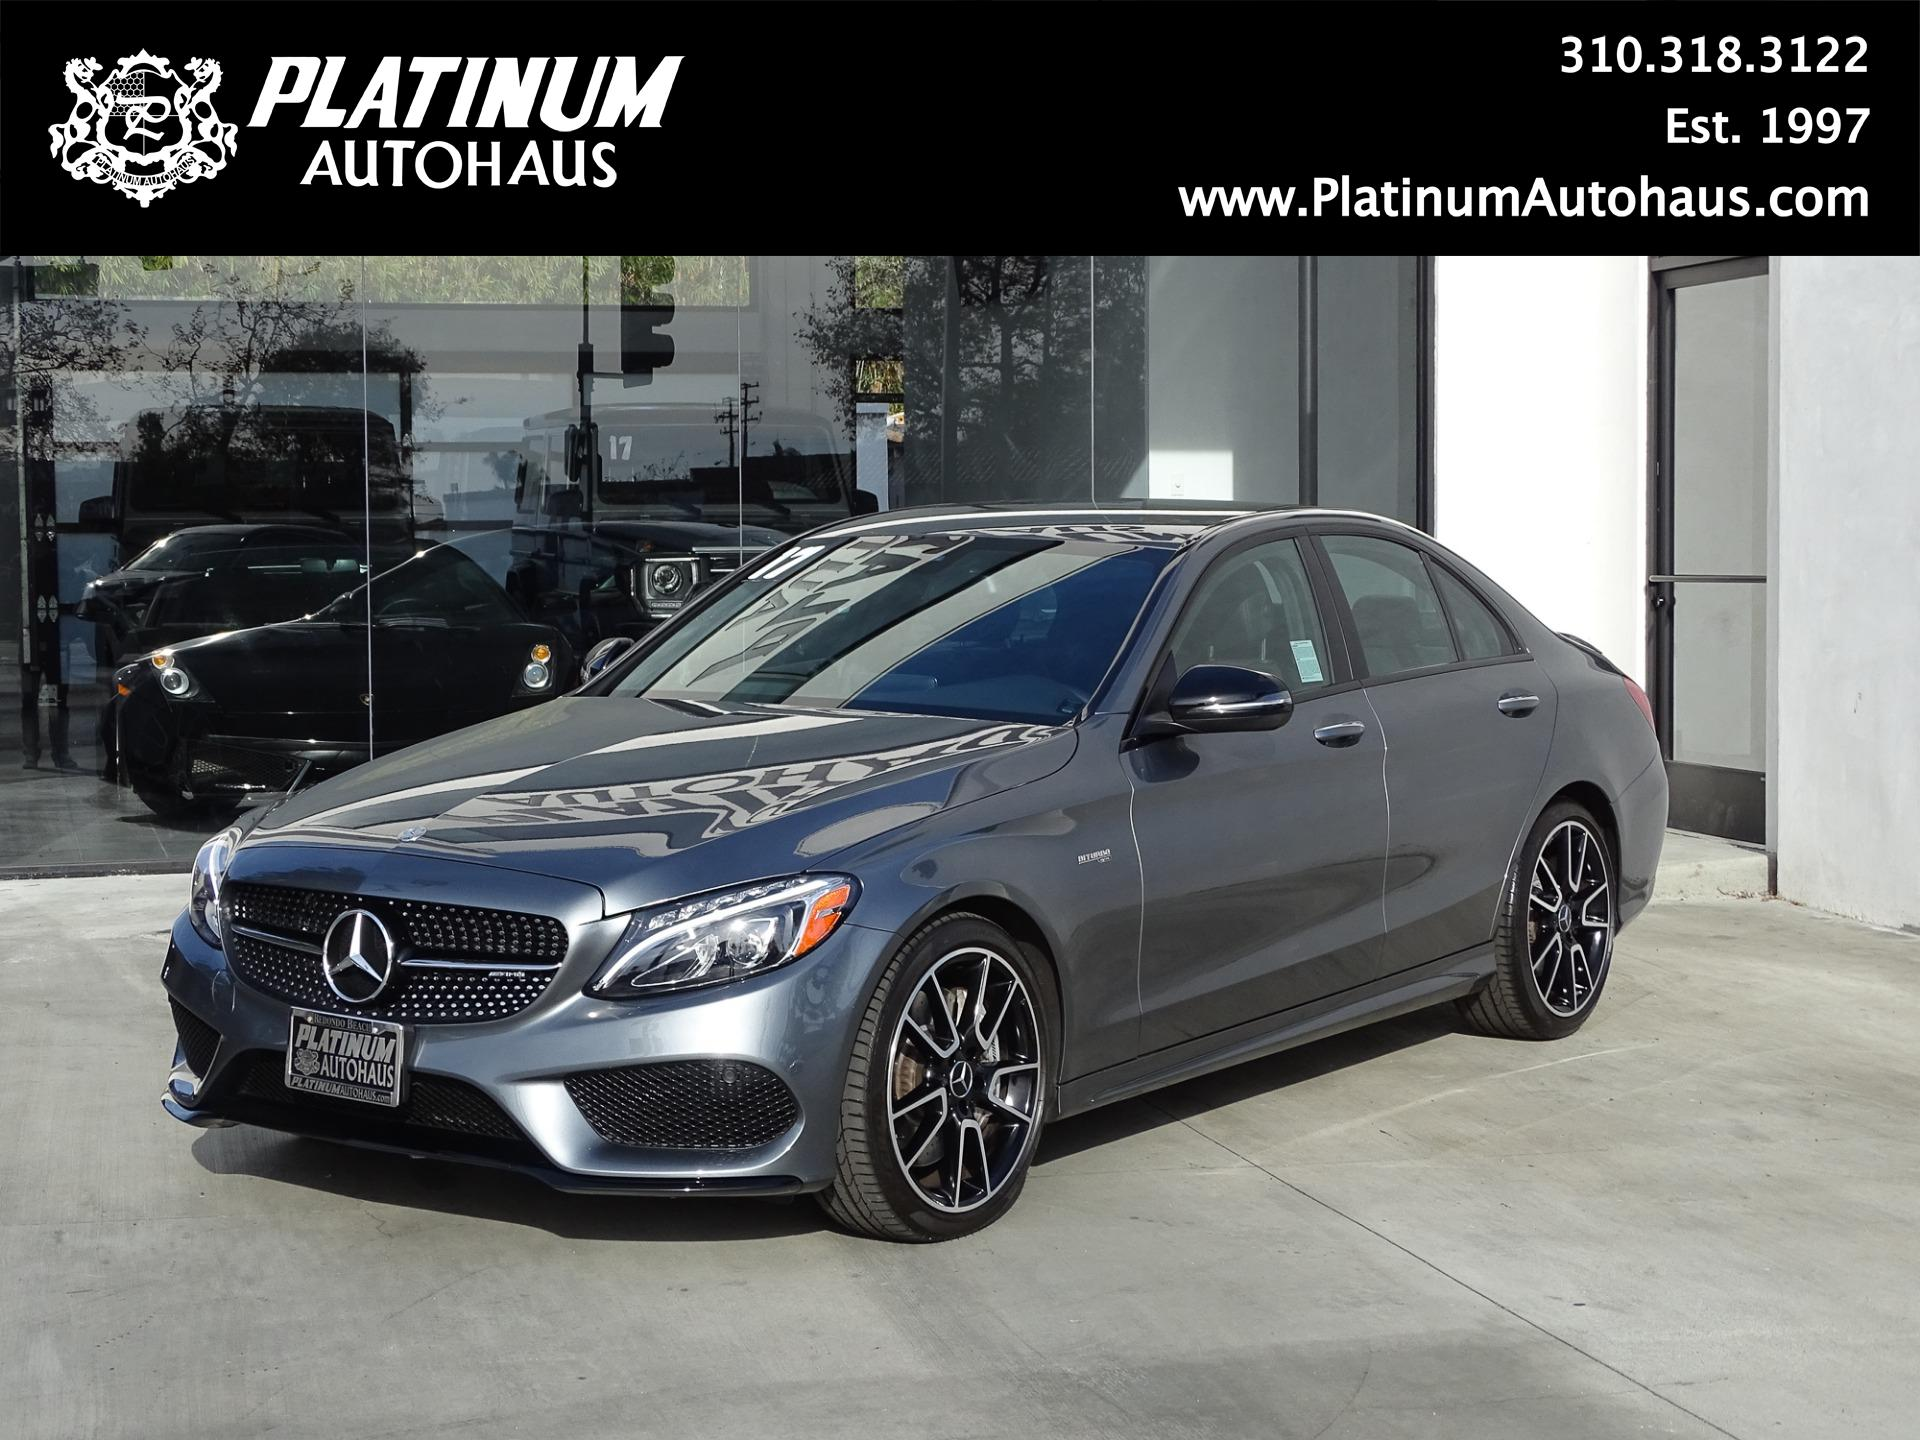 2017 Mercedes Benz C Class Amg C43 Stock 6341 For Sale Near Redondo Beach Ca Ca Mercedes Benz Dealer